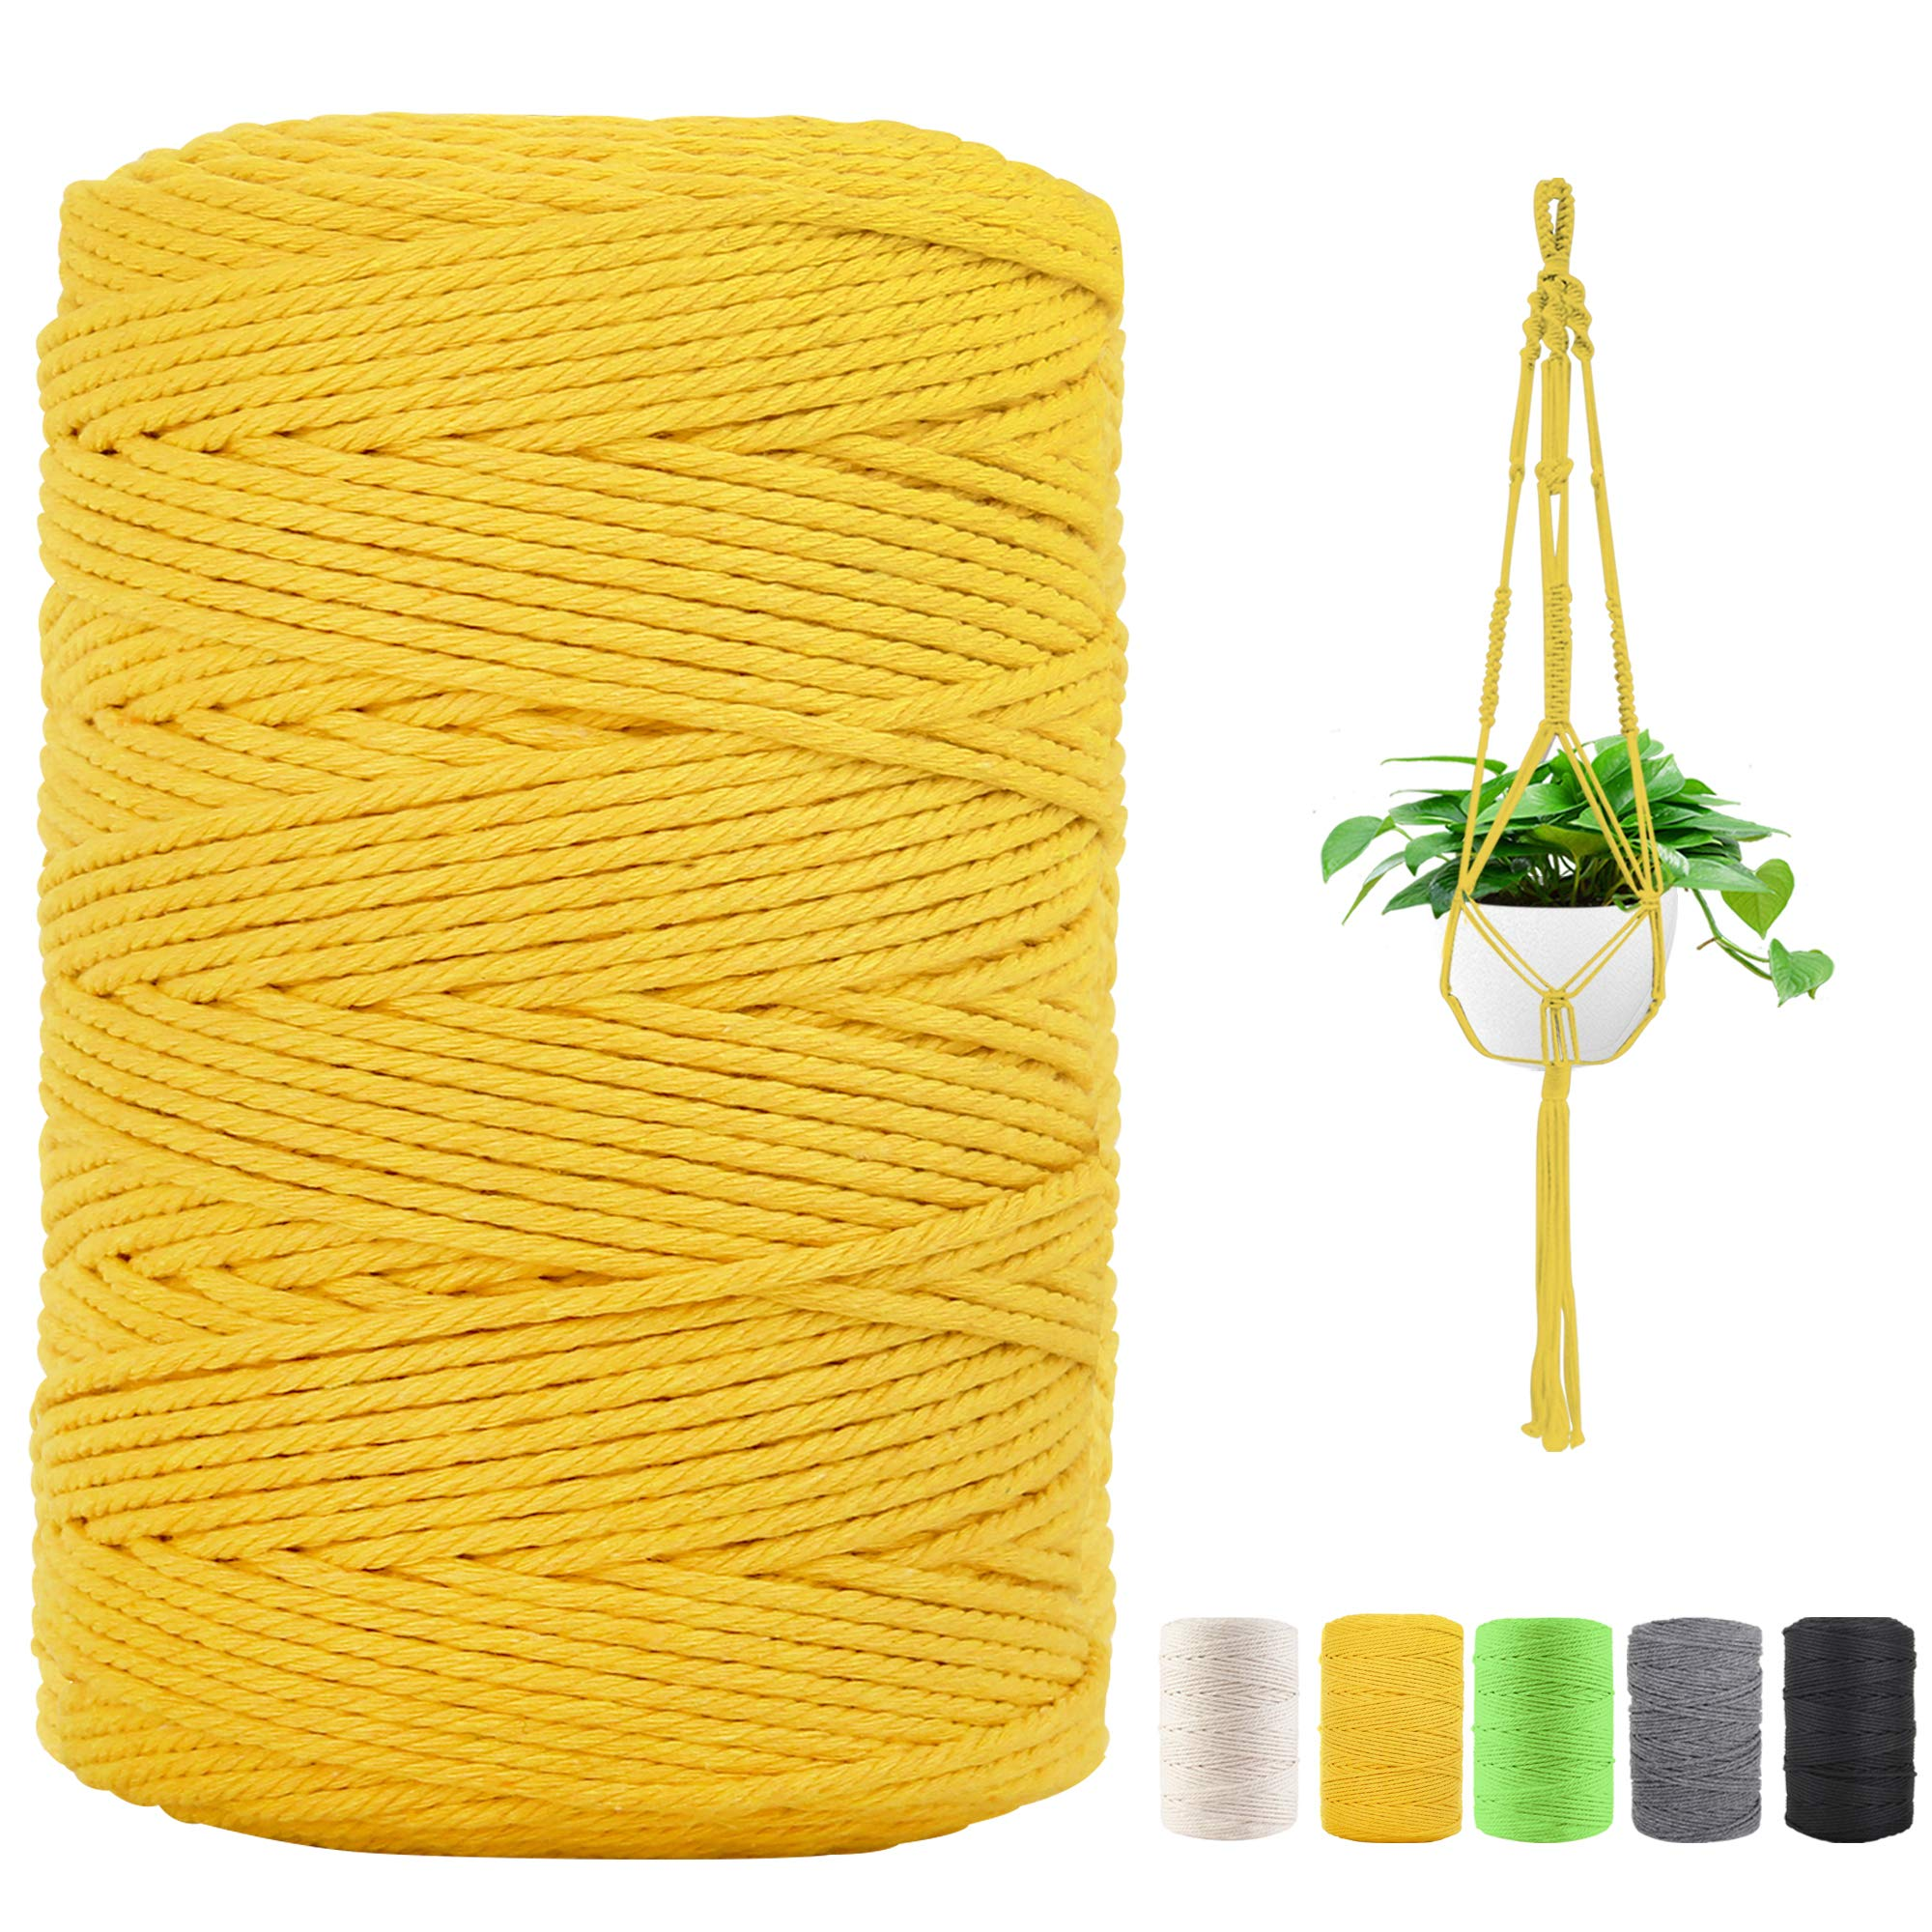 Macrame Cord 3 mm x 220 Yards, Natural Cotton Macrame Rope, 4 Strand Twisted Yellow Cotton Cord for Plant Hanger, Wall Hanging, DIY Craft Knitting and Wedding Decor